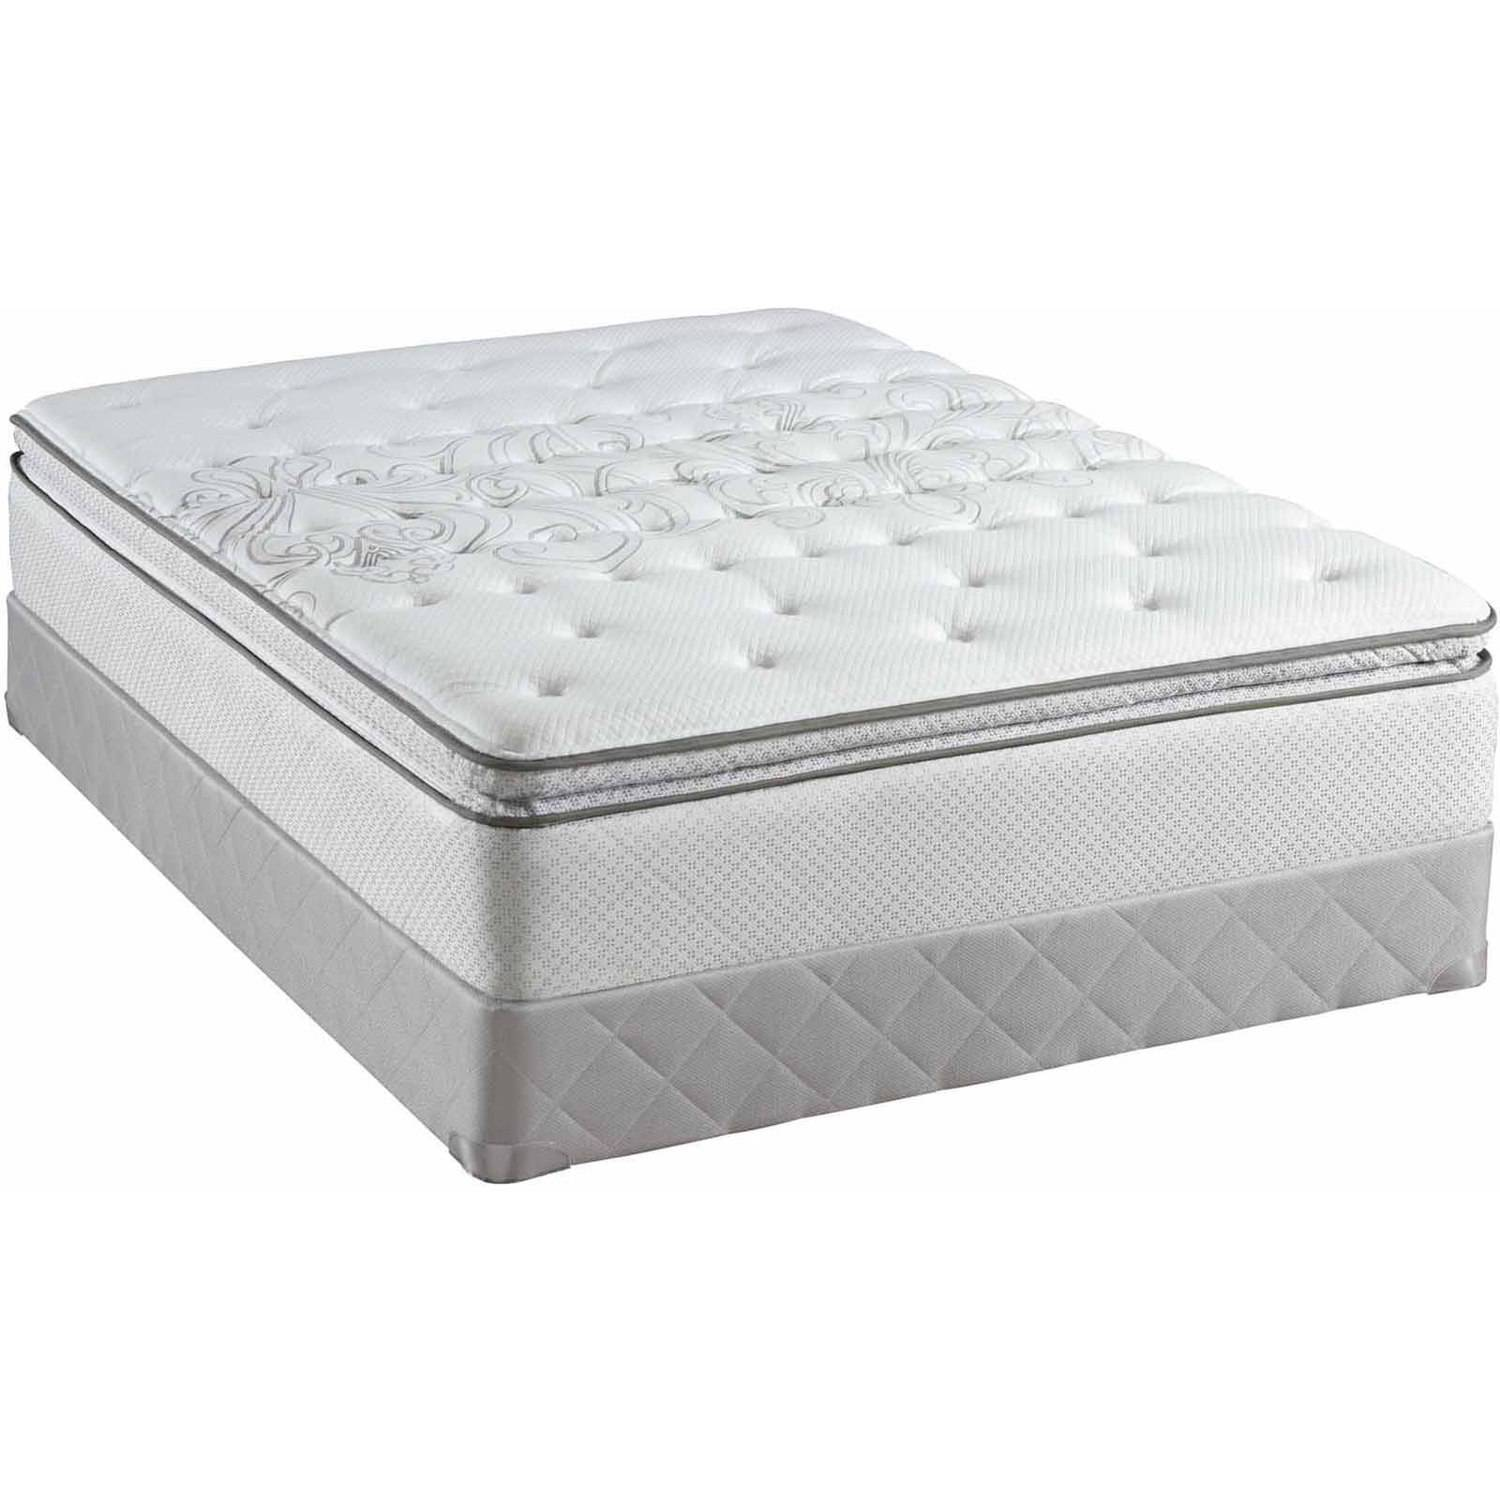 Image Result For Sealy Mattress Numbers